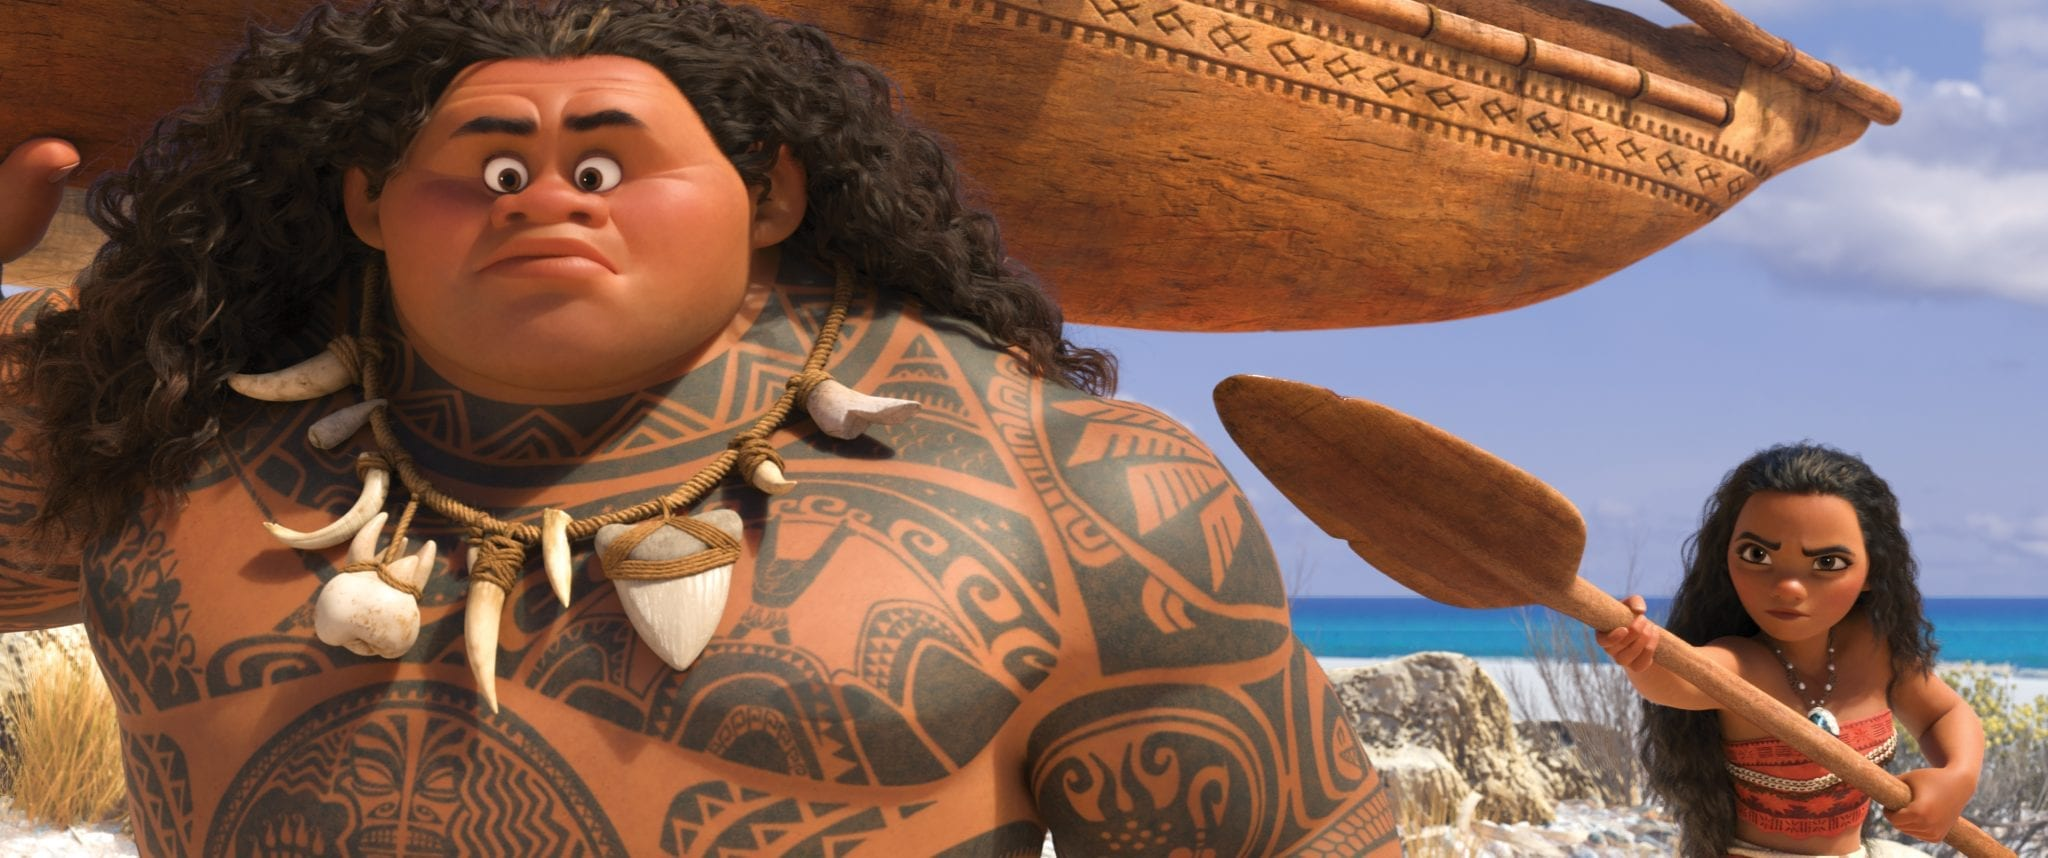 """MOANA'S MISSION — Maui (voice of Dwayne Johnson) may be a demigod—half god, half mortal, all awesome—but he's no match for Moana (voice of Auli'i Cravalho), who's determined to sail out on a daring mission to save her people. Moana's first challenge is convincing Maui to join her. Directed by Ron Clements and John Musker, produced by Osnat Shurer, and featuring music by Lin-Manuel Miranda, Mark Mancina and Opetaia Foa'i, """"Moana"""" sails into U.S. theaters on Nov. 23, 2016. ©2016 Disney. All Rights Reserved."""